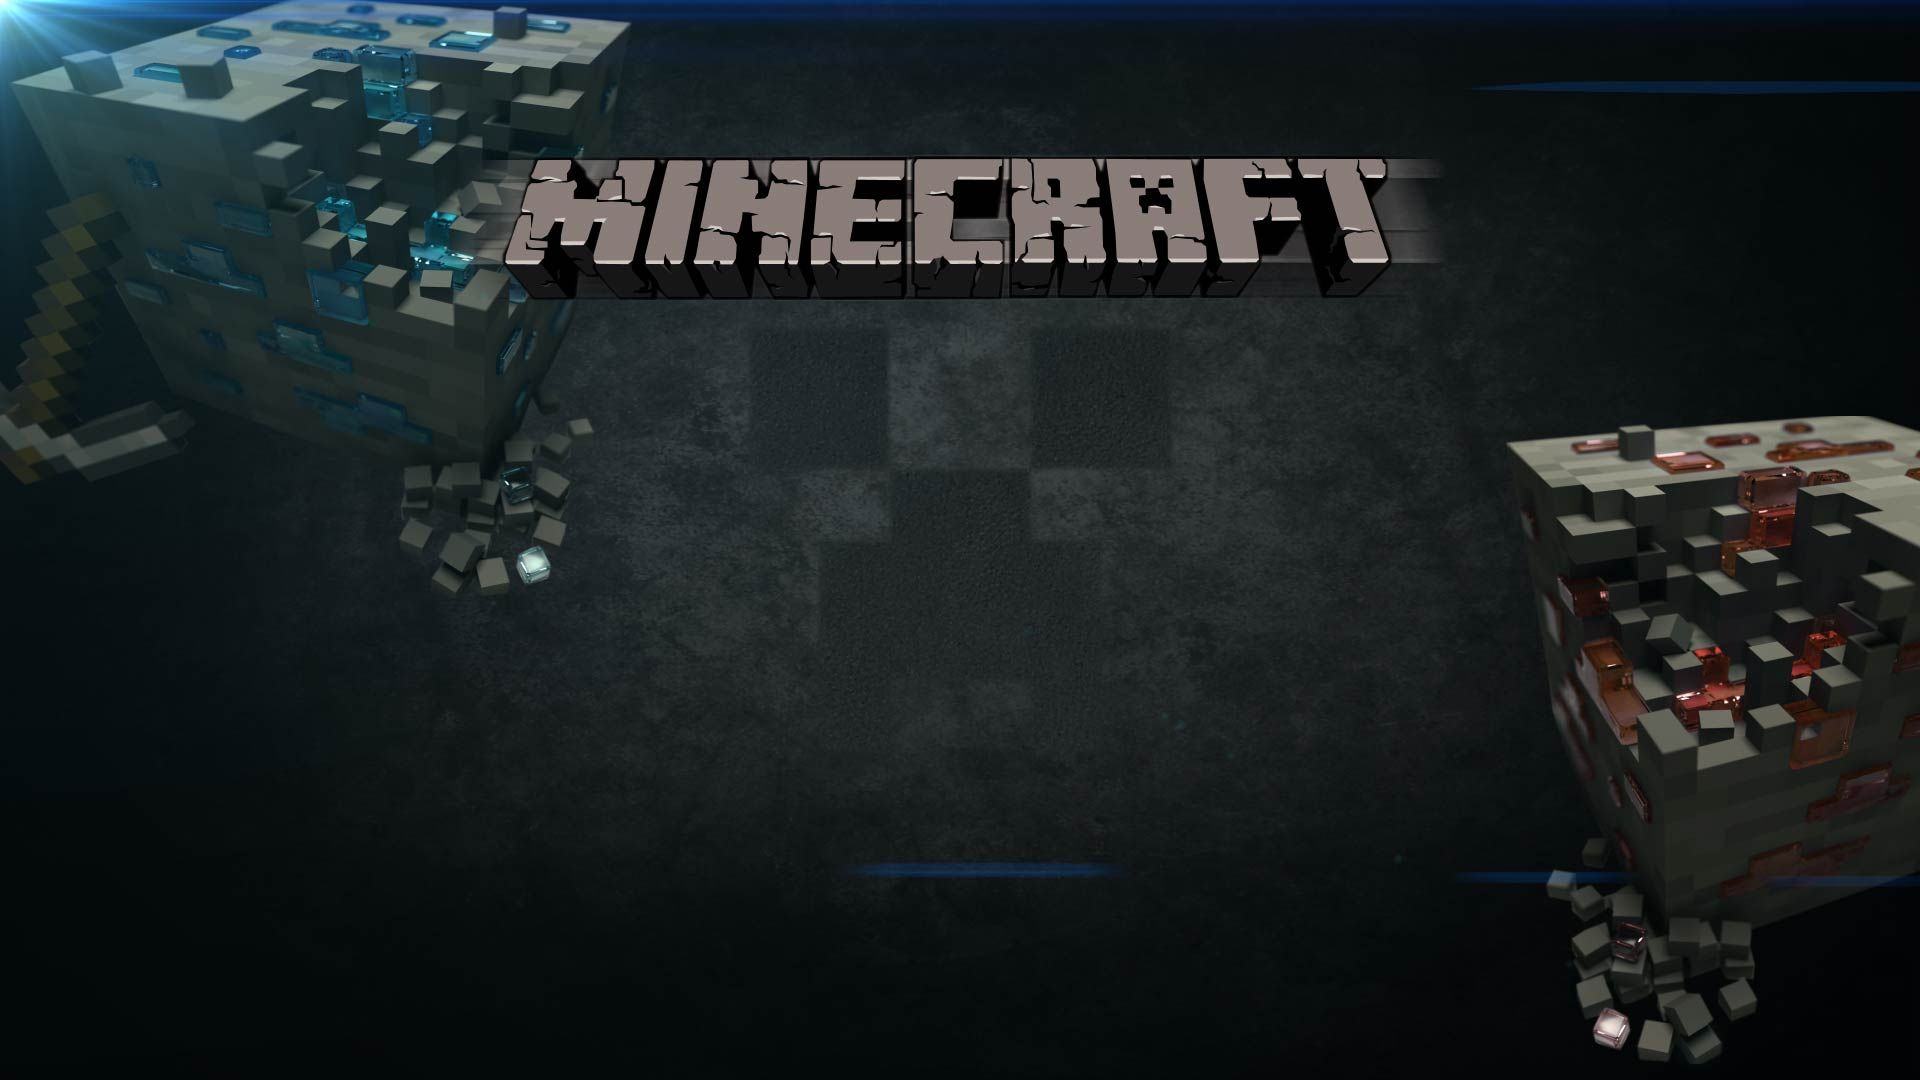 Minecraft Wallpaper 1920×1080 Minecraft Wallpapers HD 1080p (41 Wallpapers) | Adorable Wallpapers